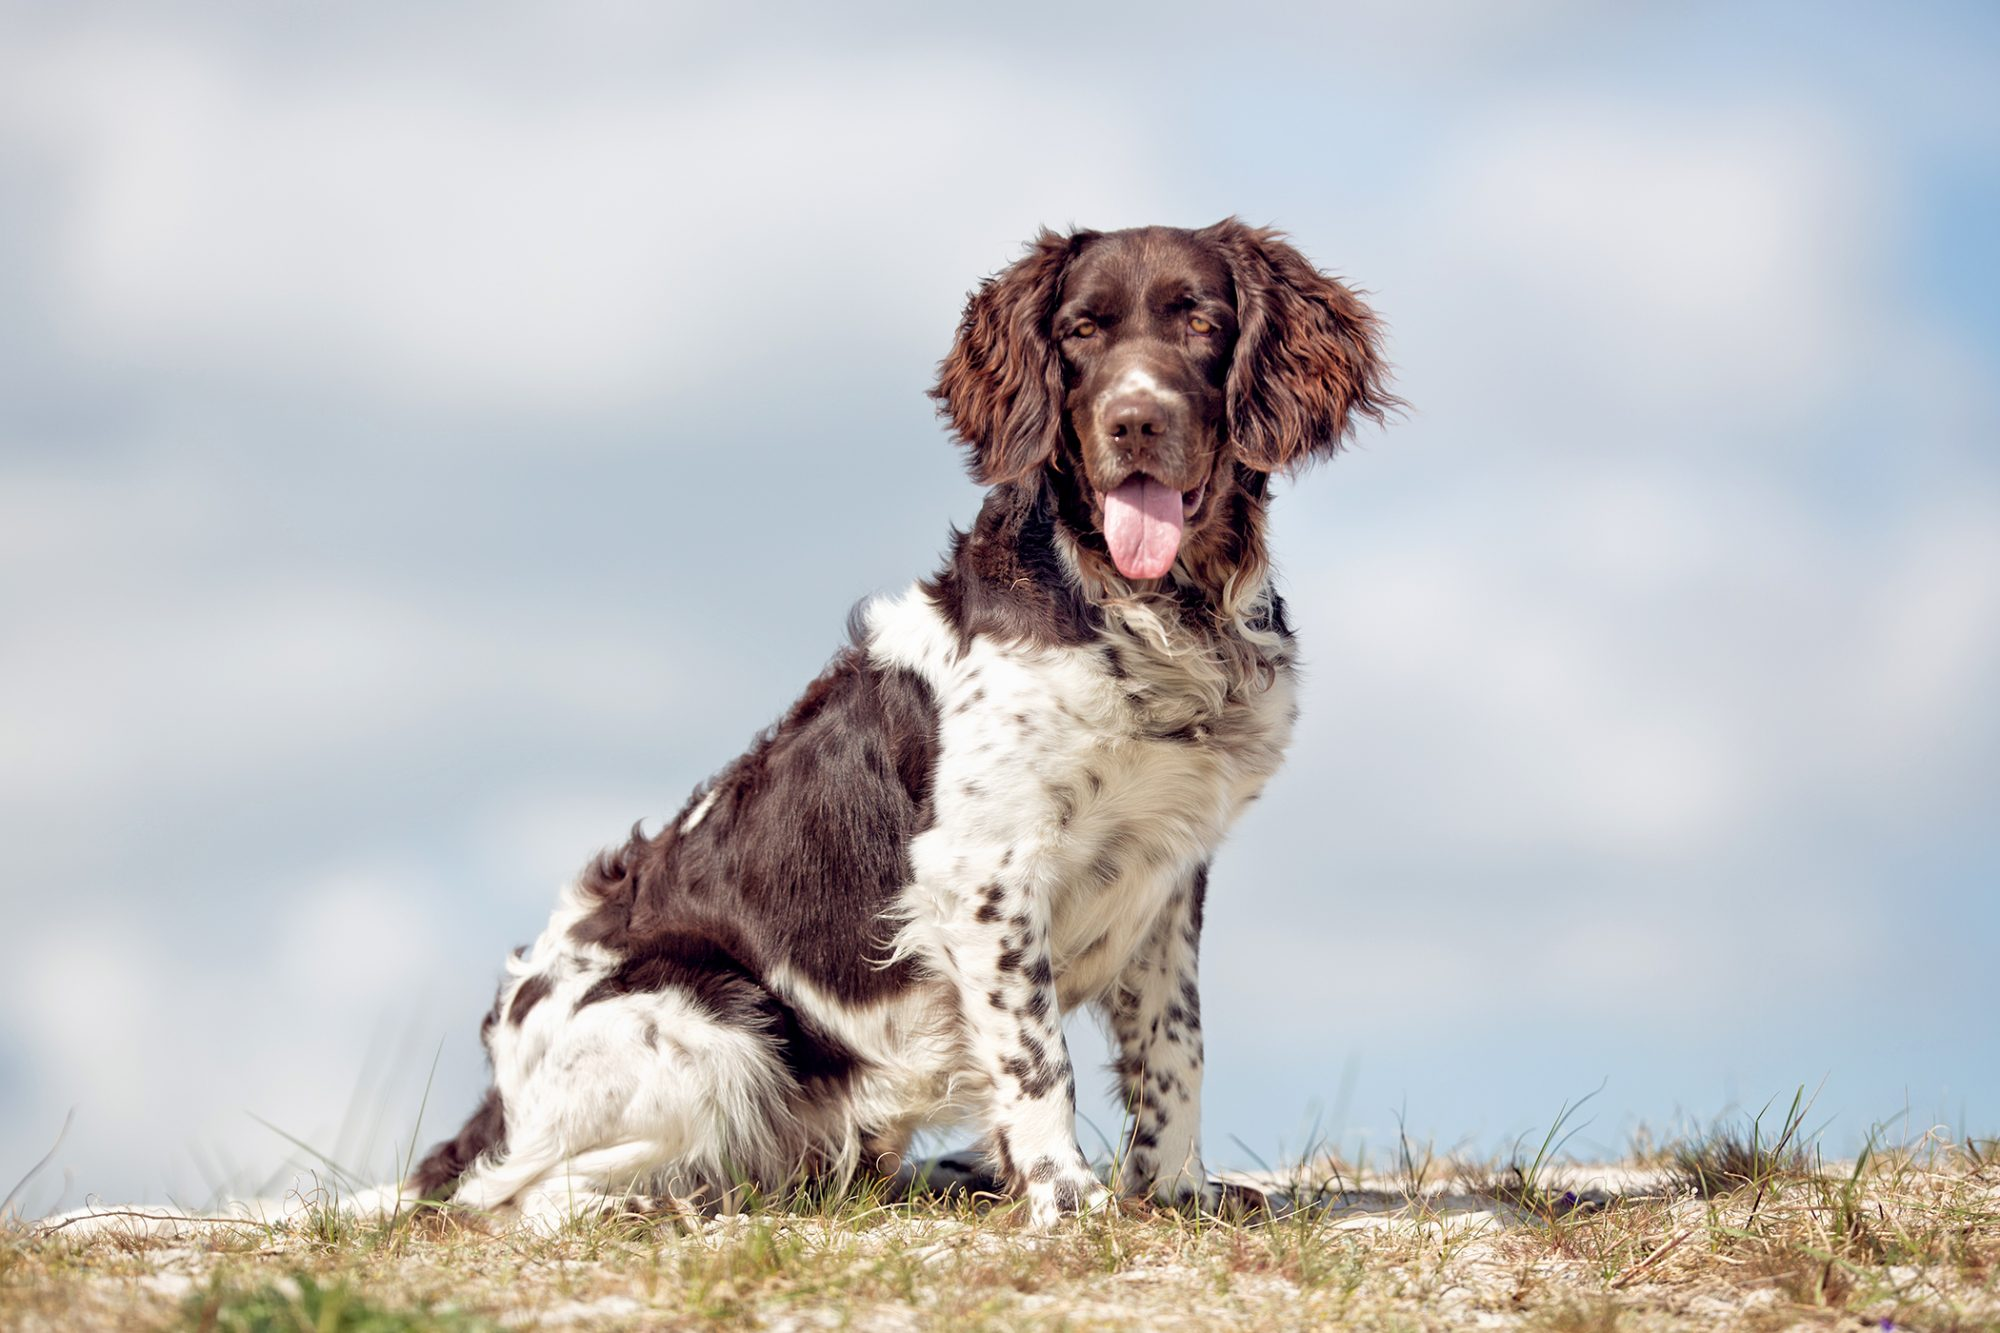 Brown and white Munsterlander dog happily sits on hilltop against overcast sky, shot from below